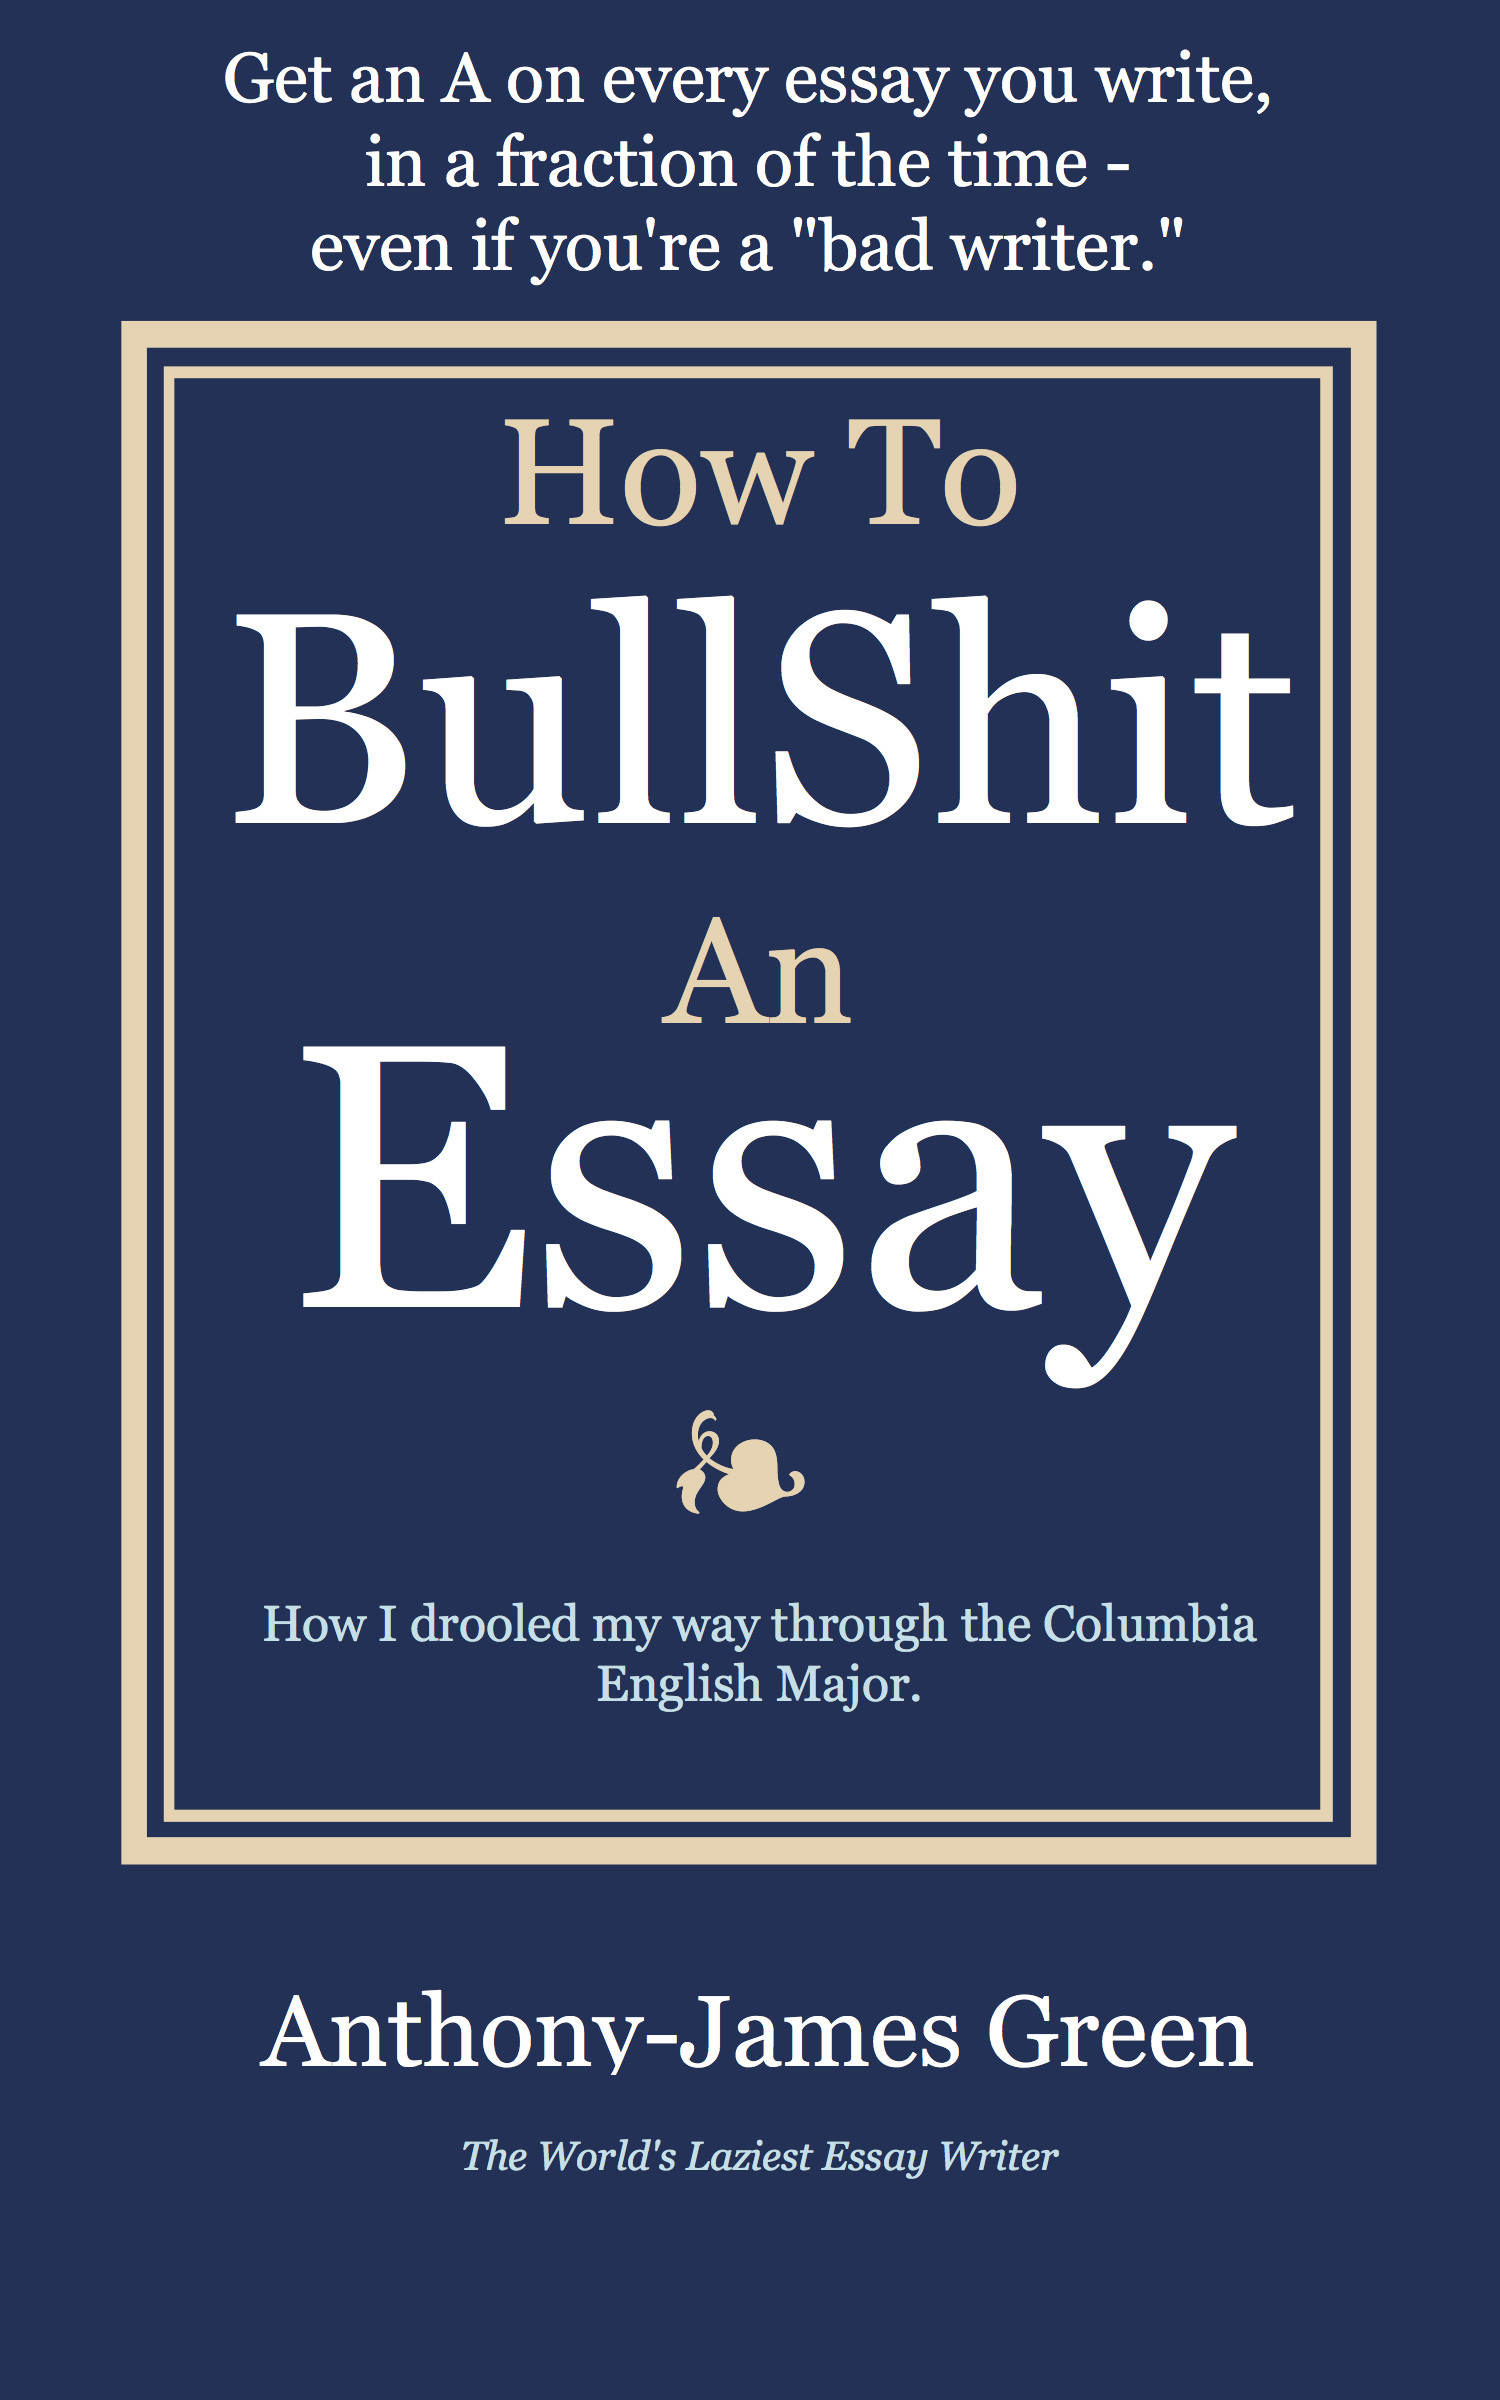 on bullshit essay On bullshit - kindle edition by harry g frankfurt download it once and read it on your kindle device, pc, phones or tablets  a short, philosophical essay on a.